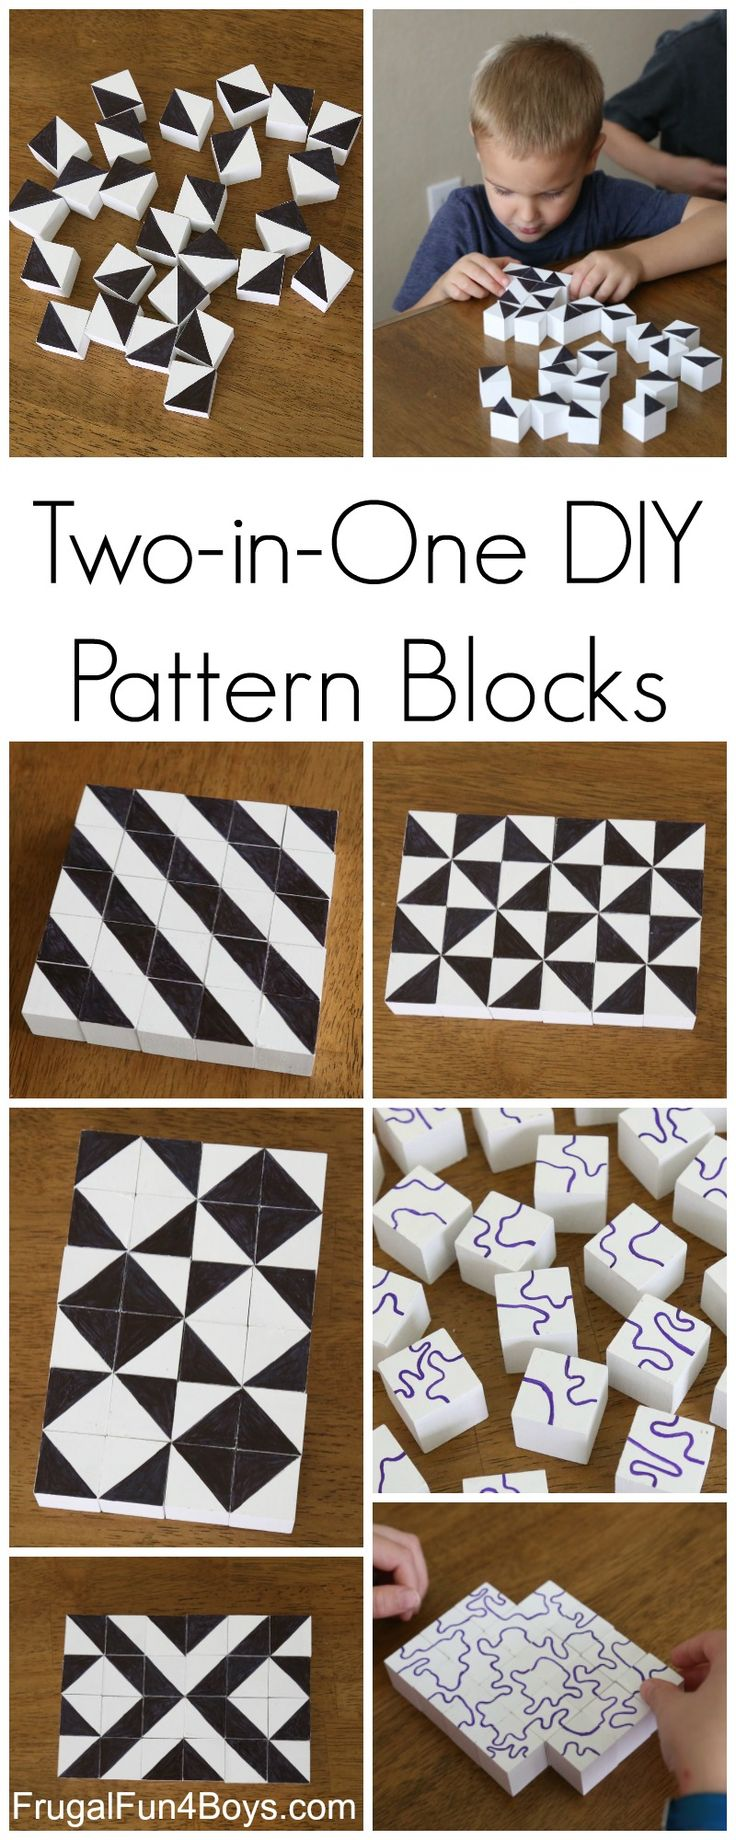 DIY Pattern Building Blocks: An Awesome STEM Activity for Kids